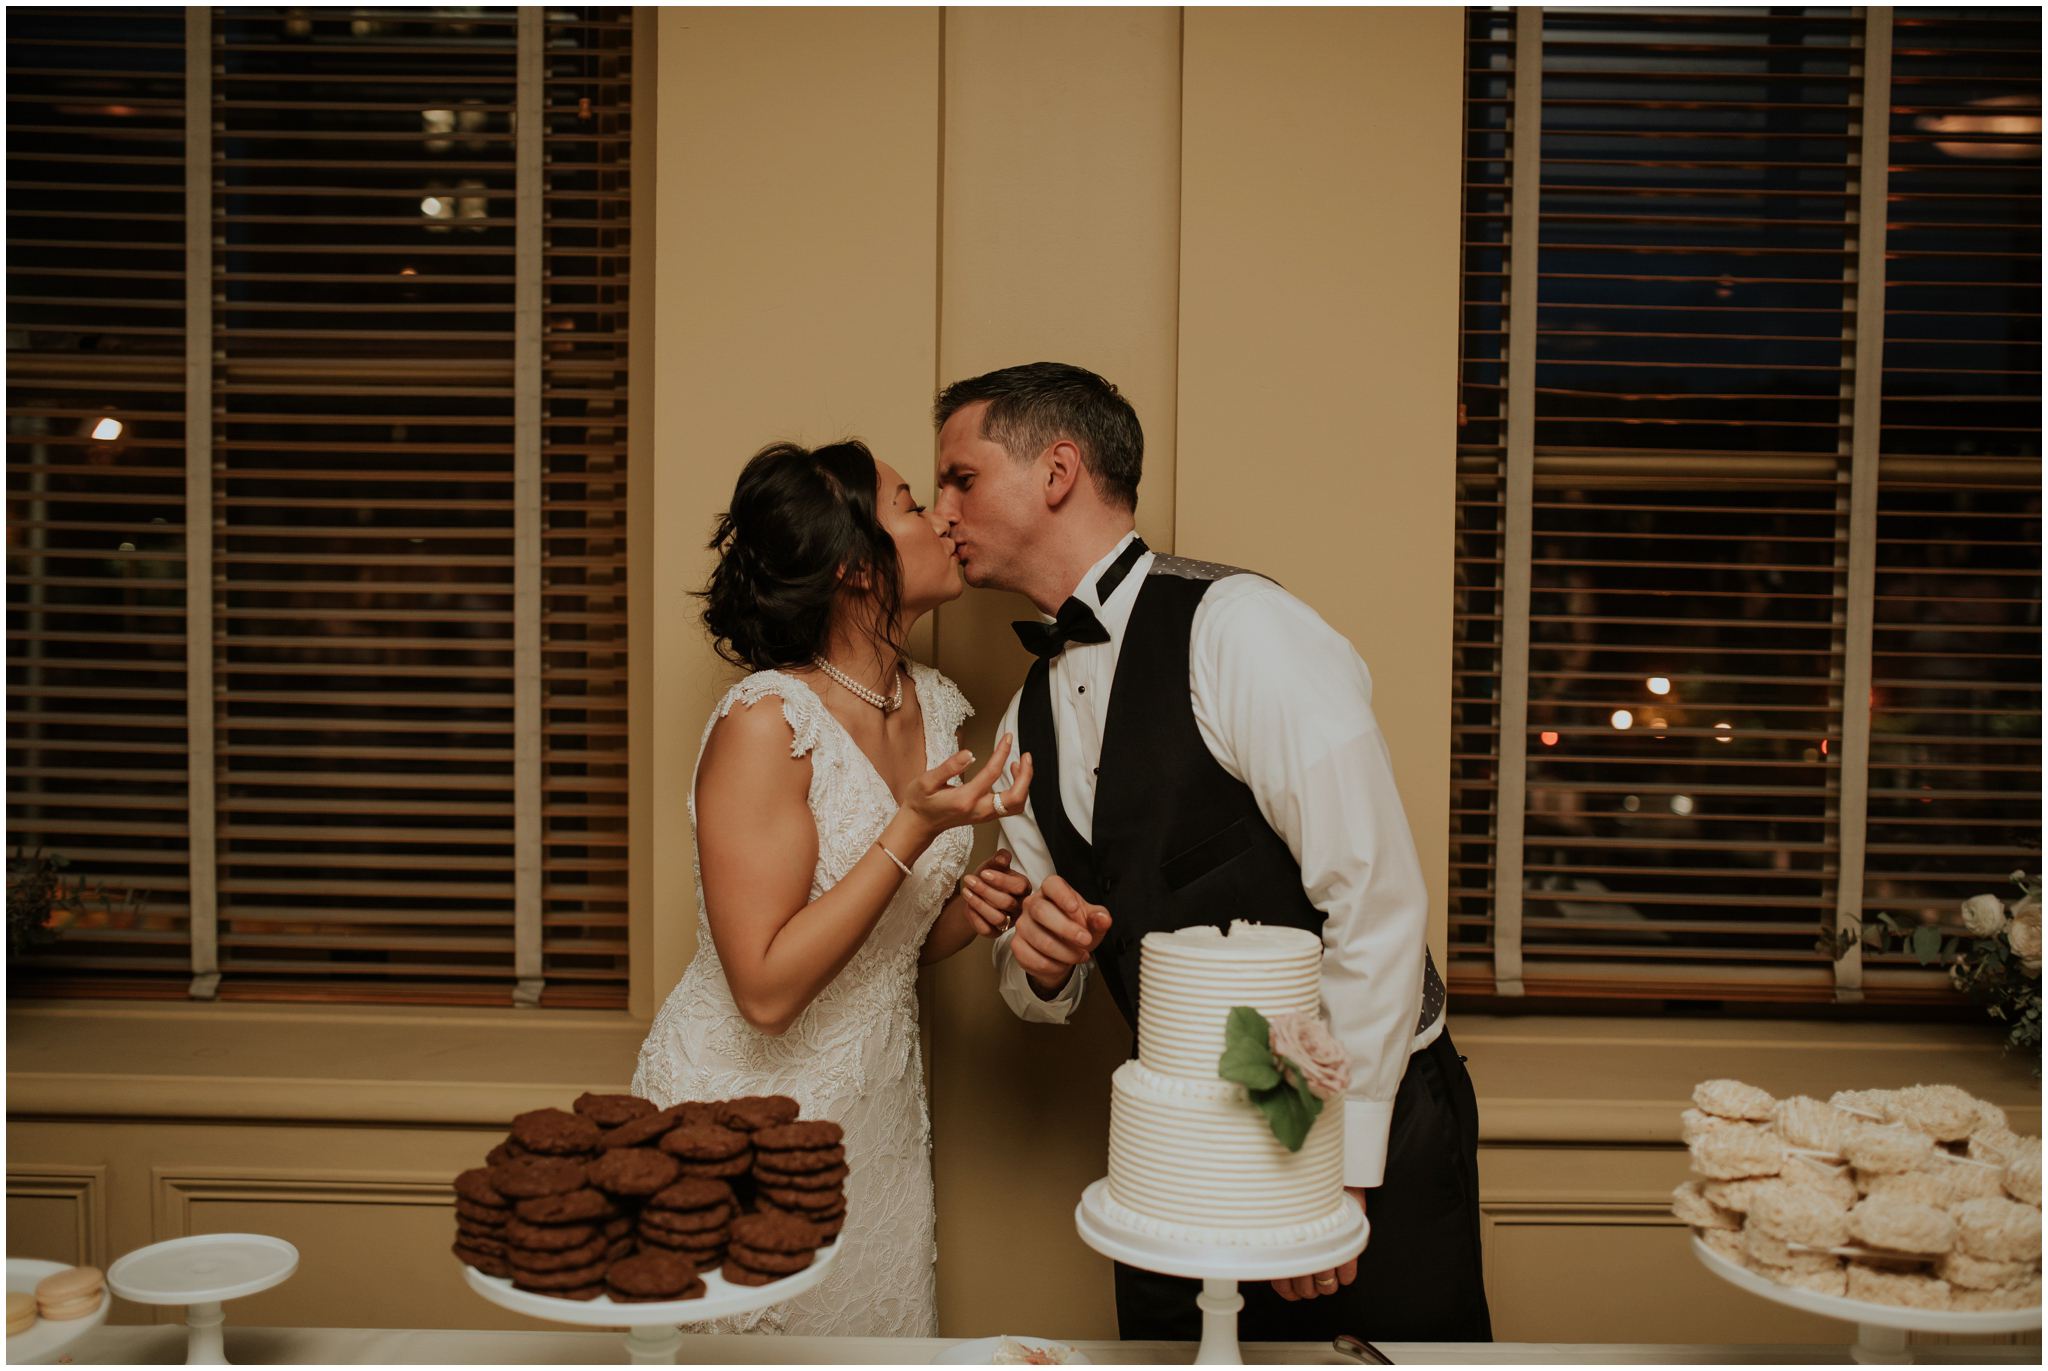 arctic-club-seattle-wedding-terri-and-steve-photographer-caitlyn-nikula-139.jpg